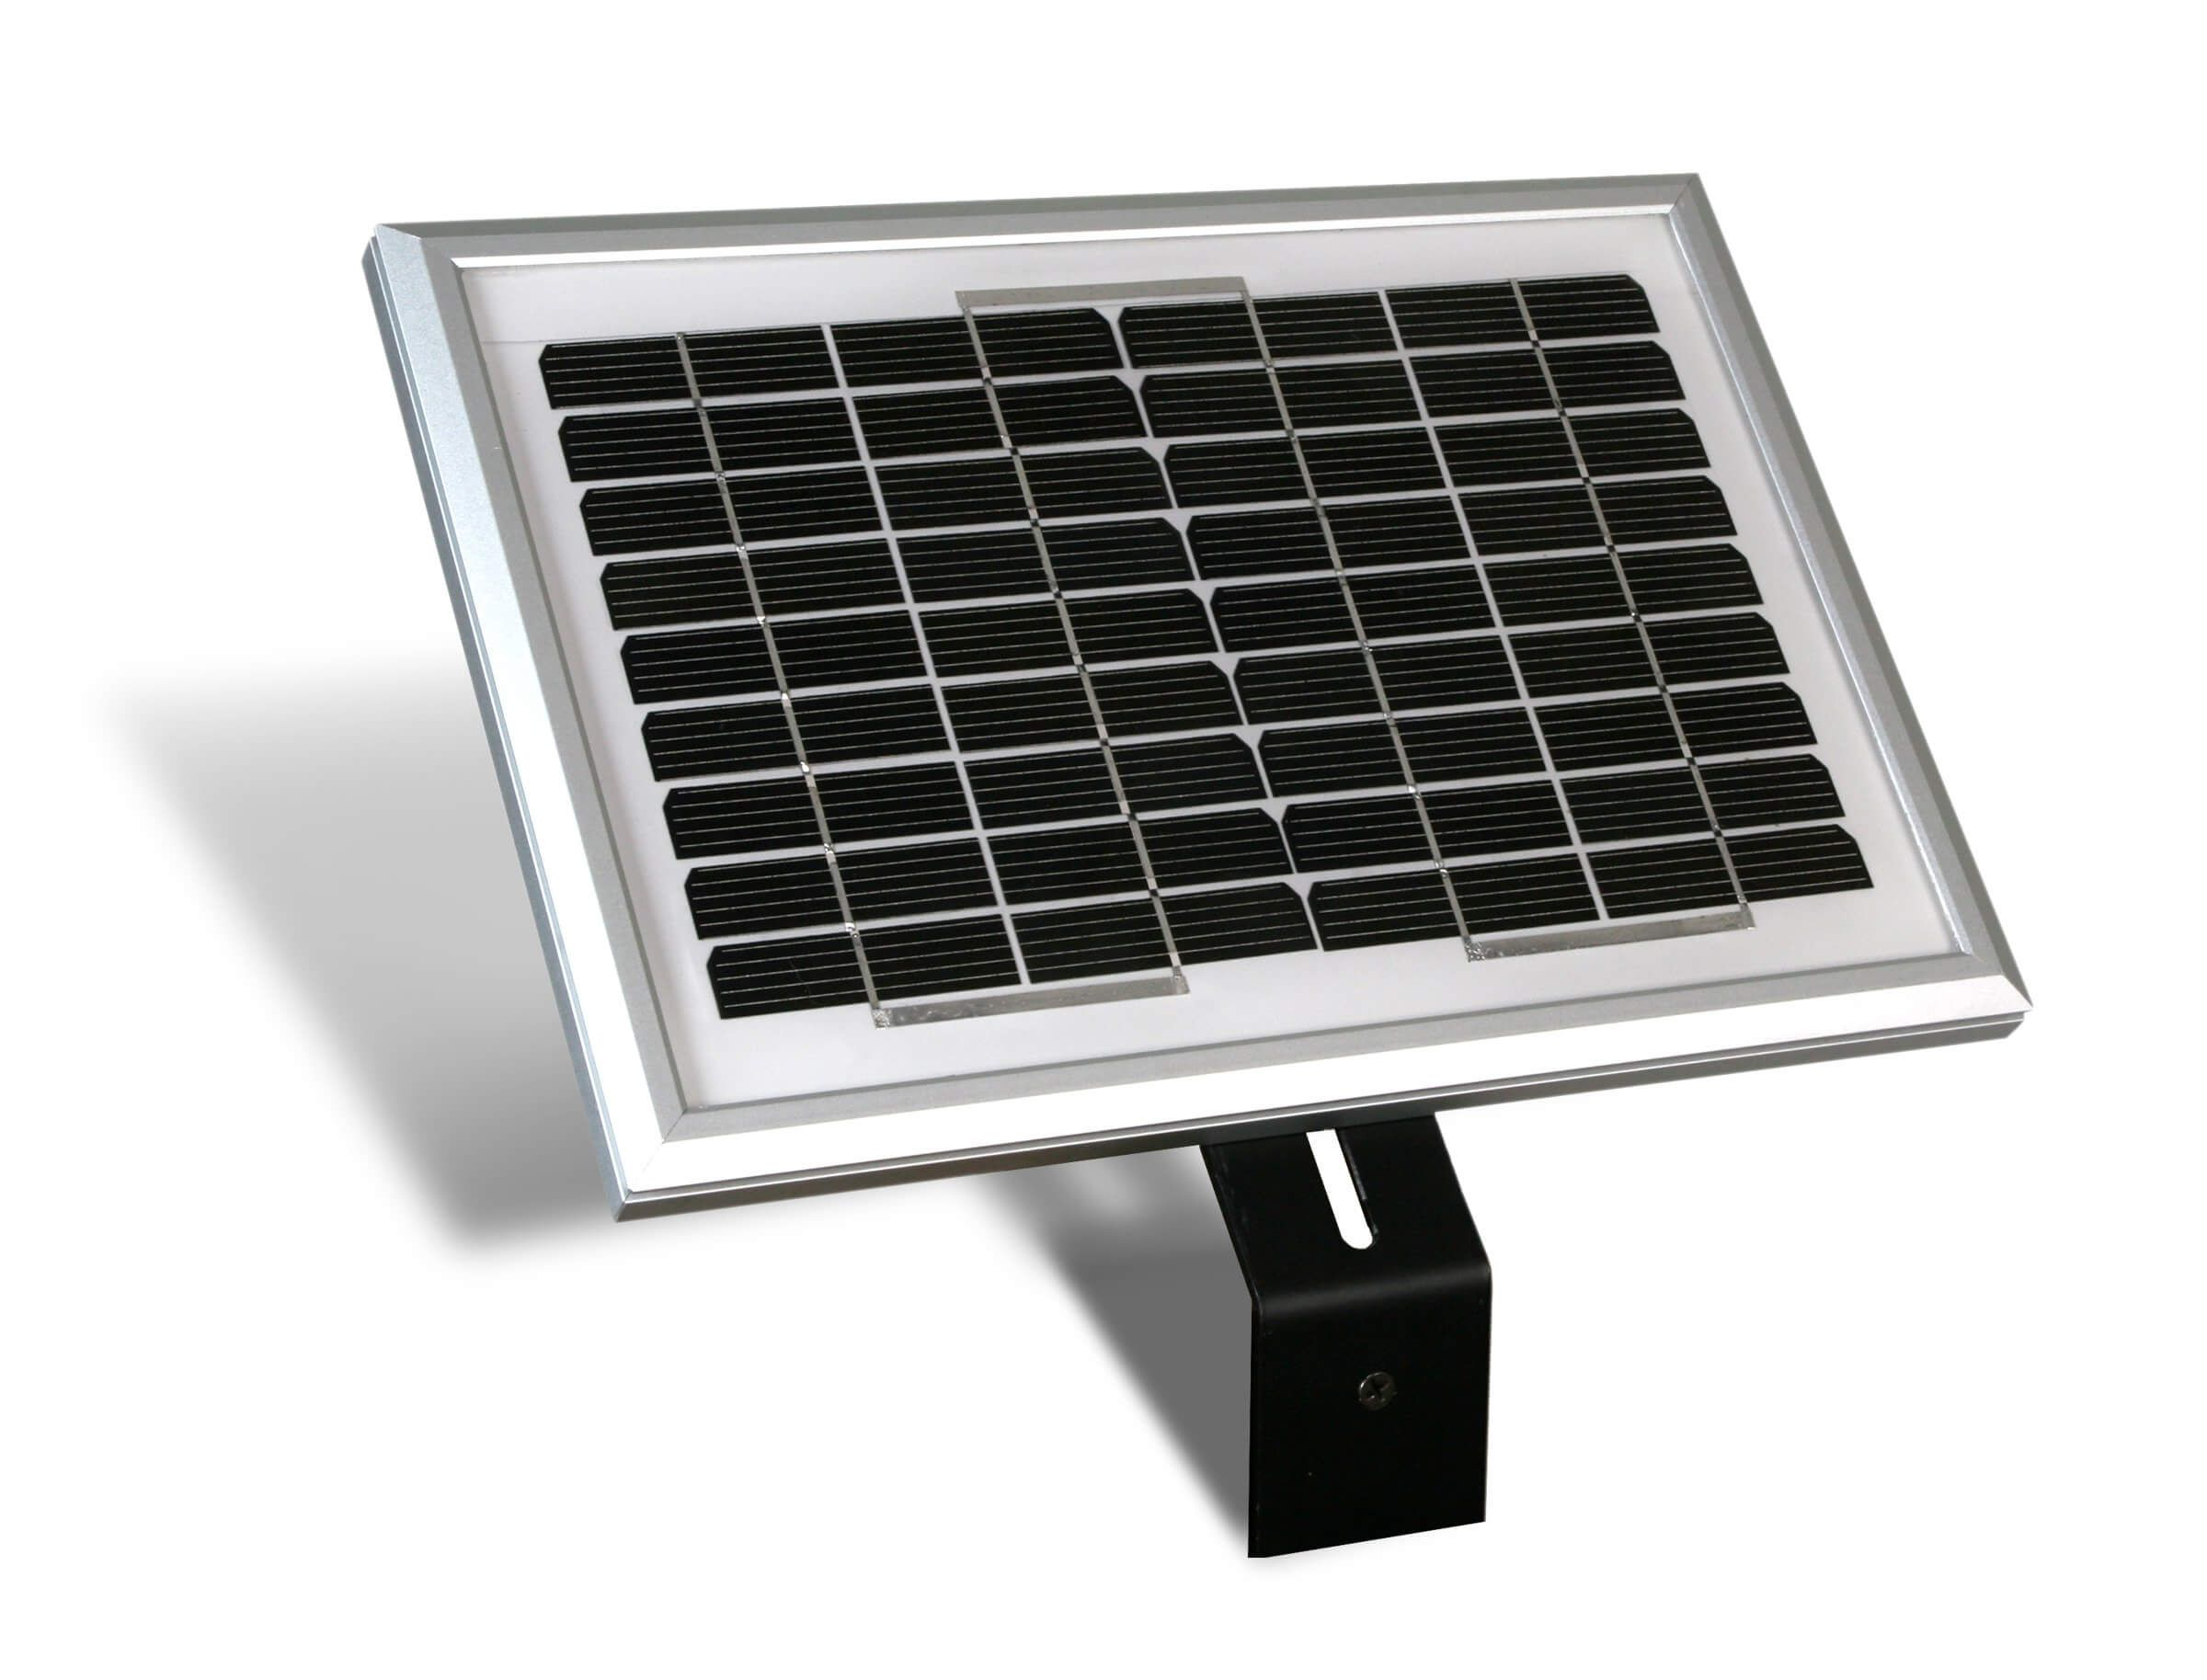 Going Green The Advantages Of Using 12v Solar Panels Solar Solarenergy Energy Solarpanels Solar Panel Installation Solar Energy Panels Solar Panel Kits